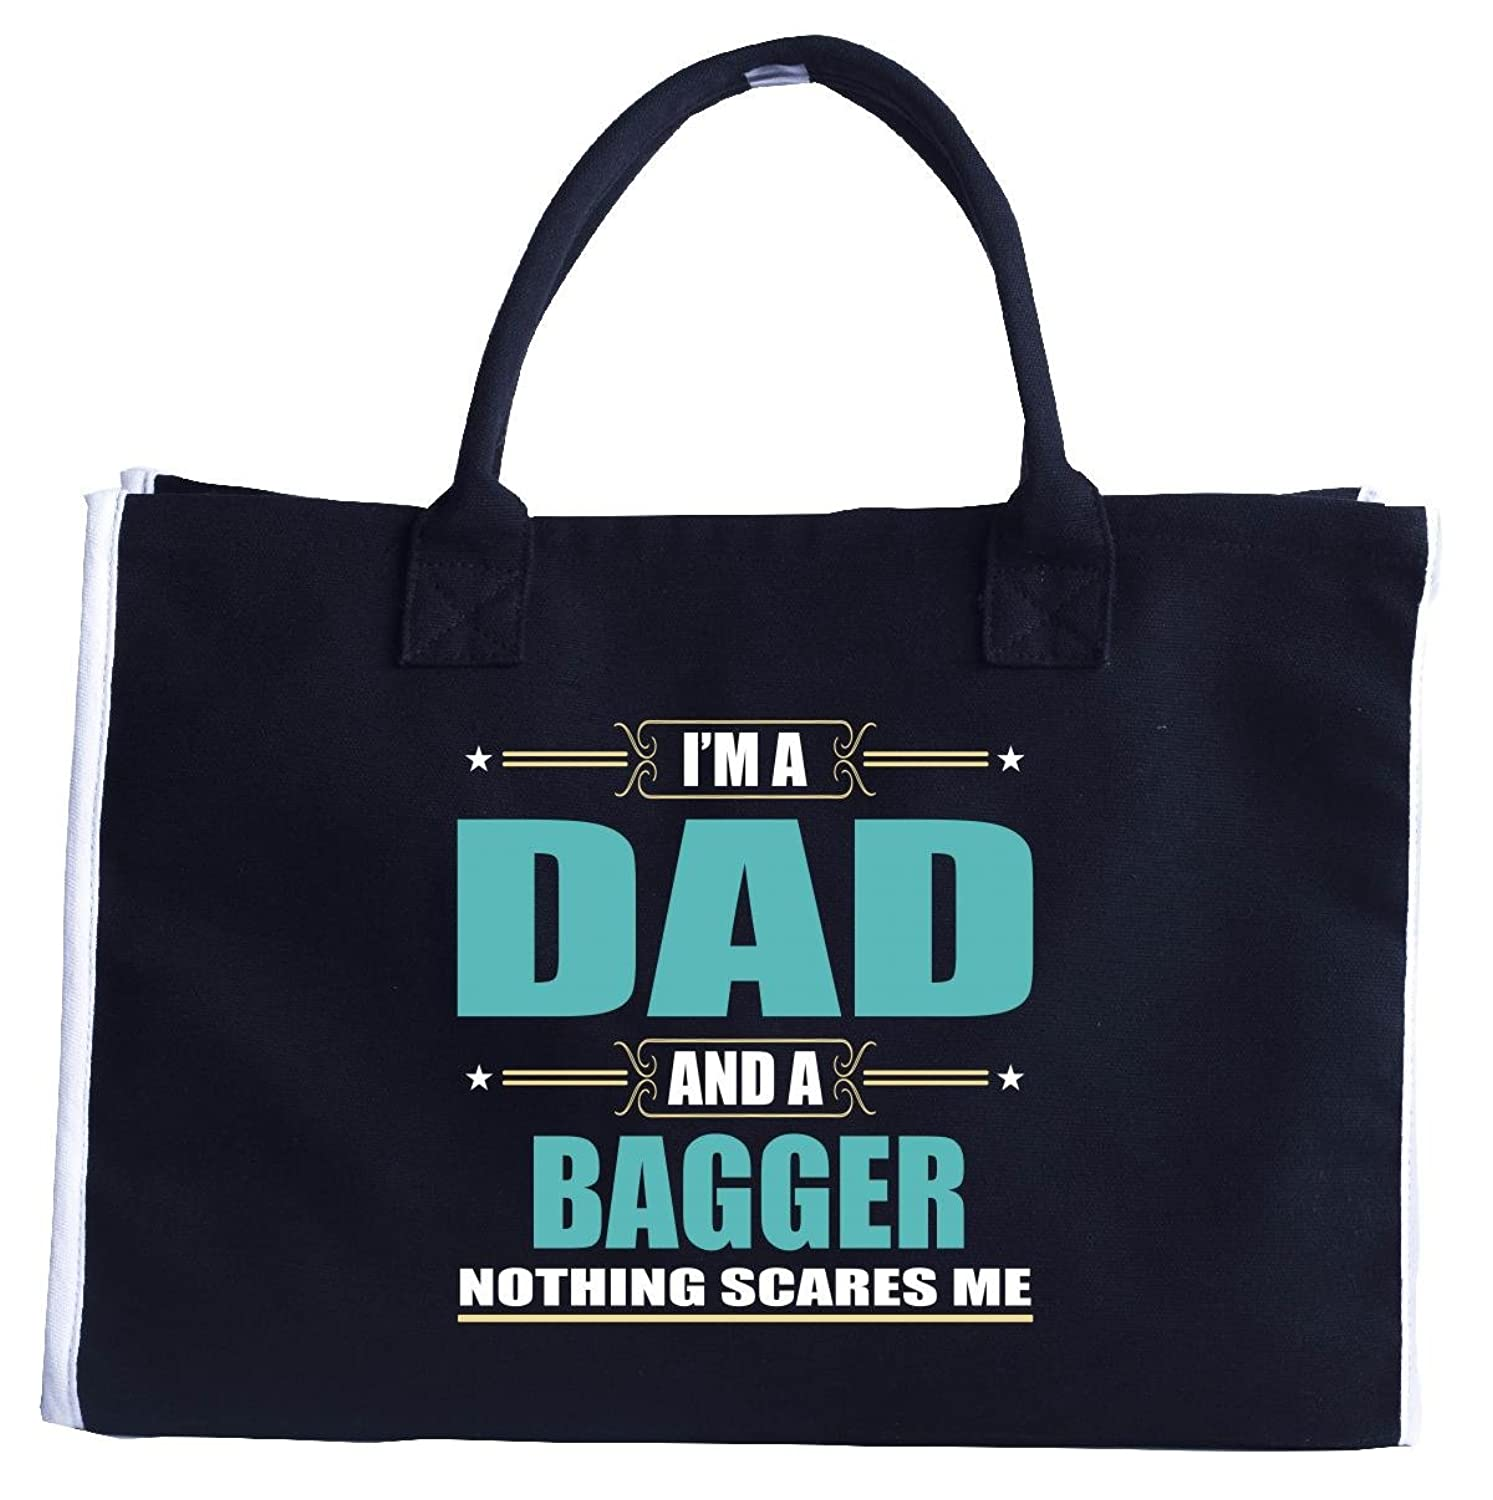 I'm A Dad And A Bagger Nothing Scares Me - Fashion Tote Bag